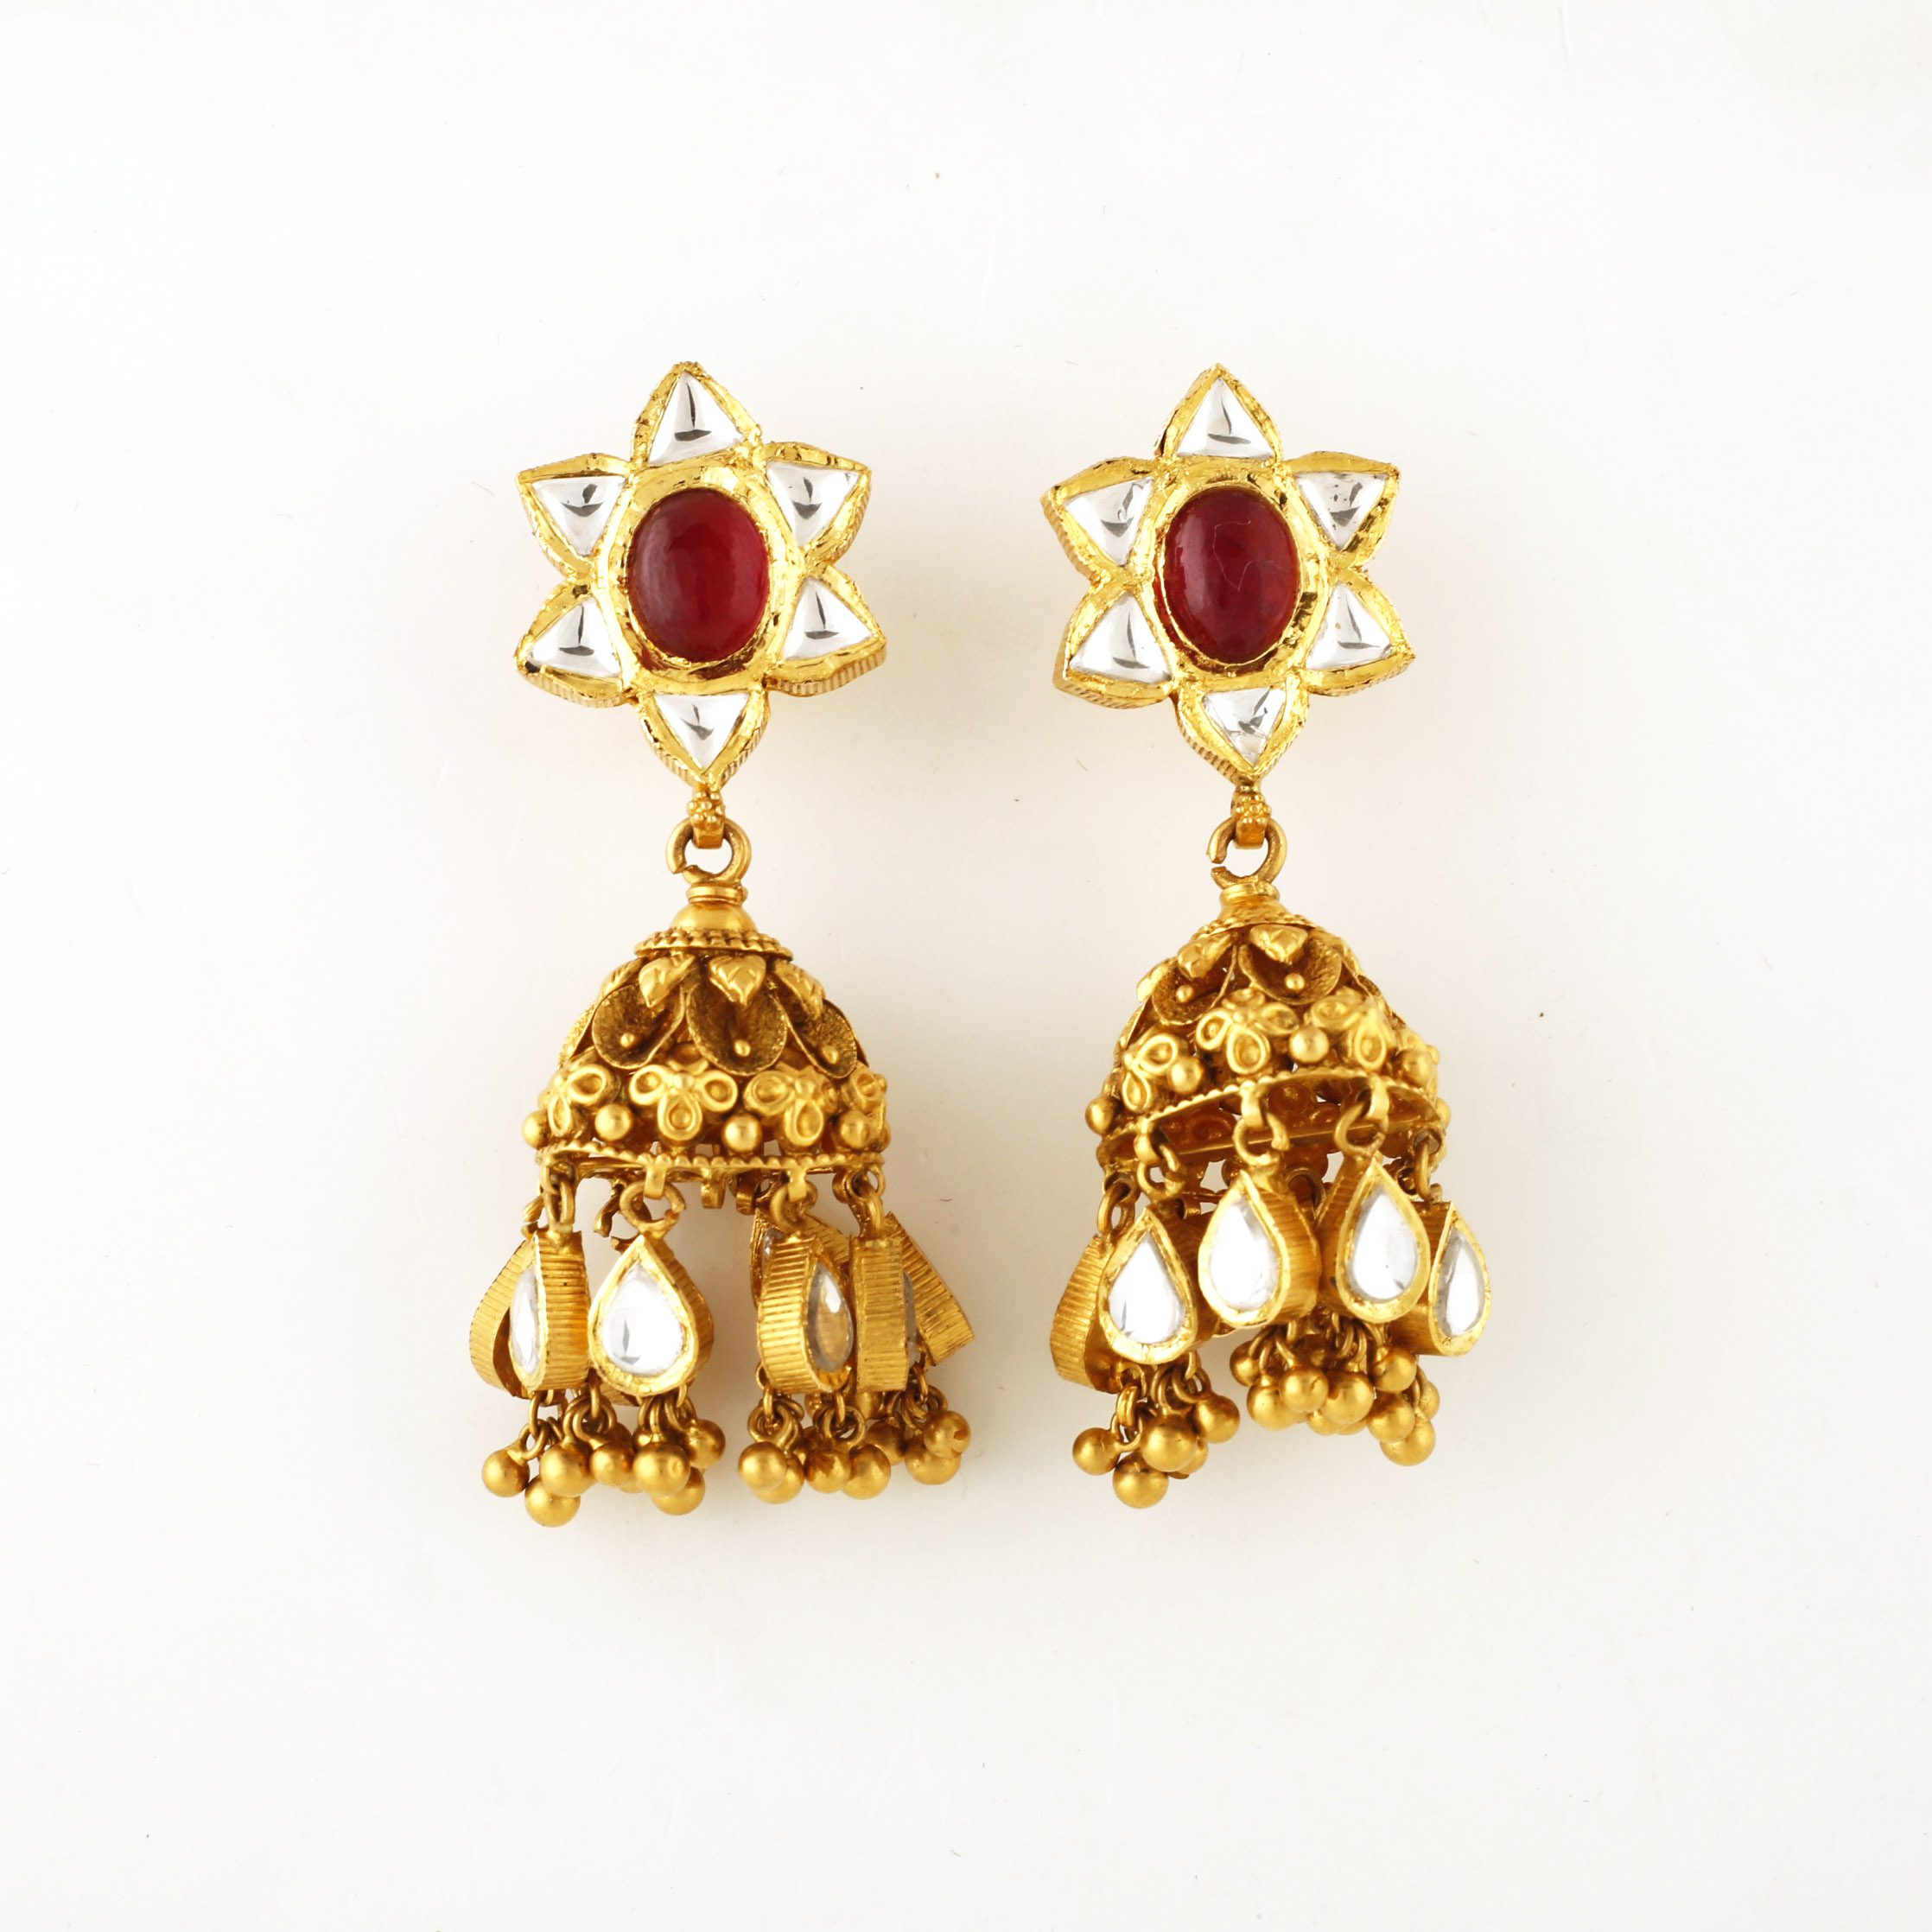 paula jordaan operandi mendoza gold plated earrings pinterest pin and moda